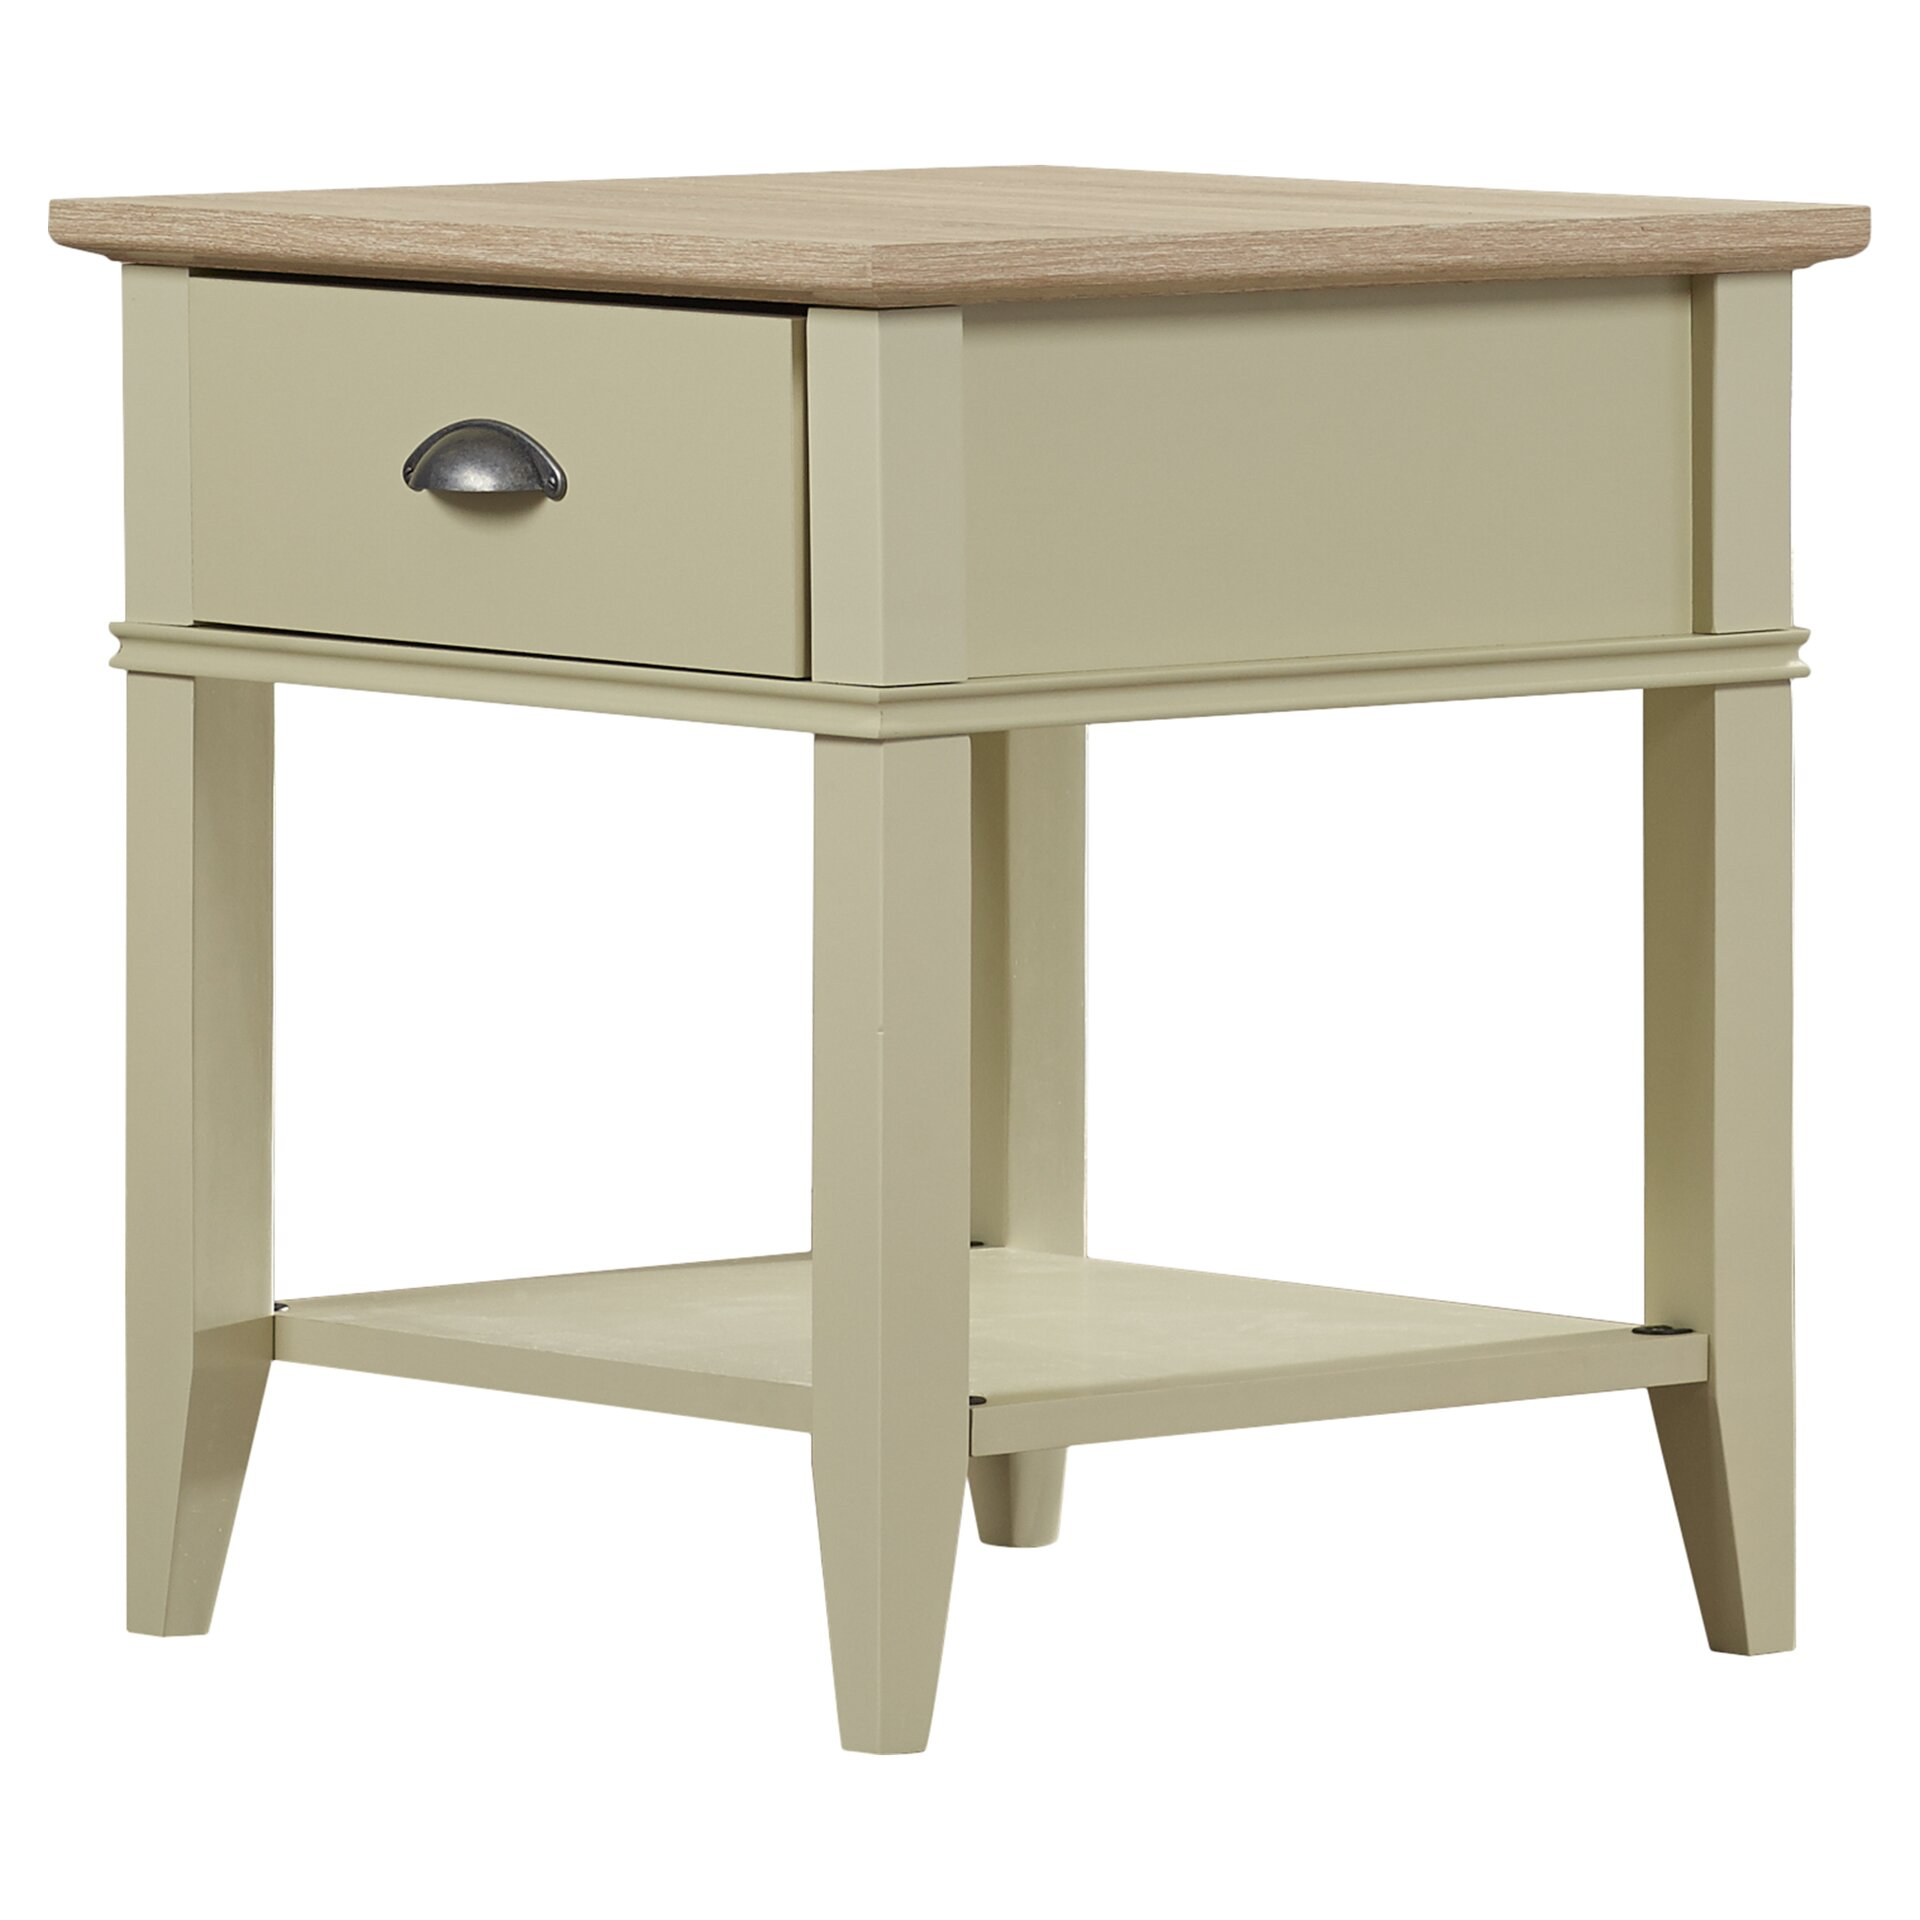 Beachcrest home dundee end table with 1 drawer reviews for End tables with drawers